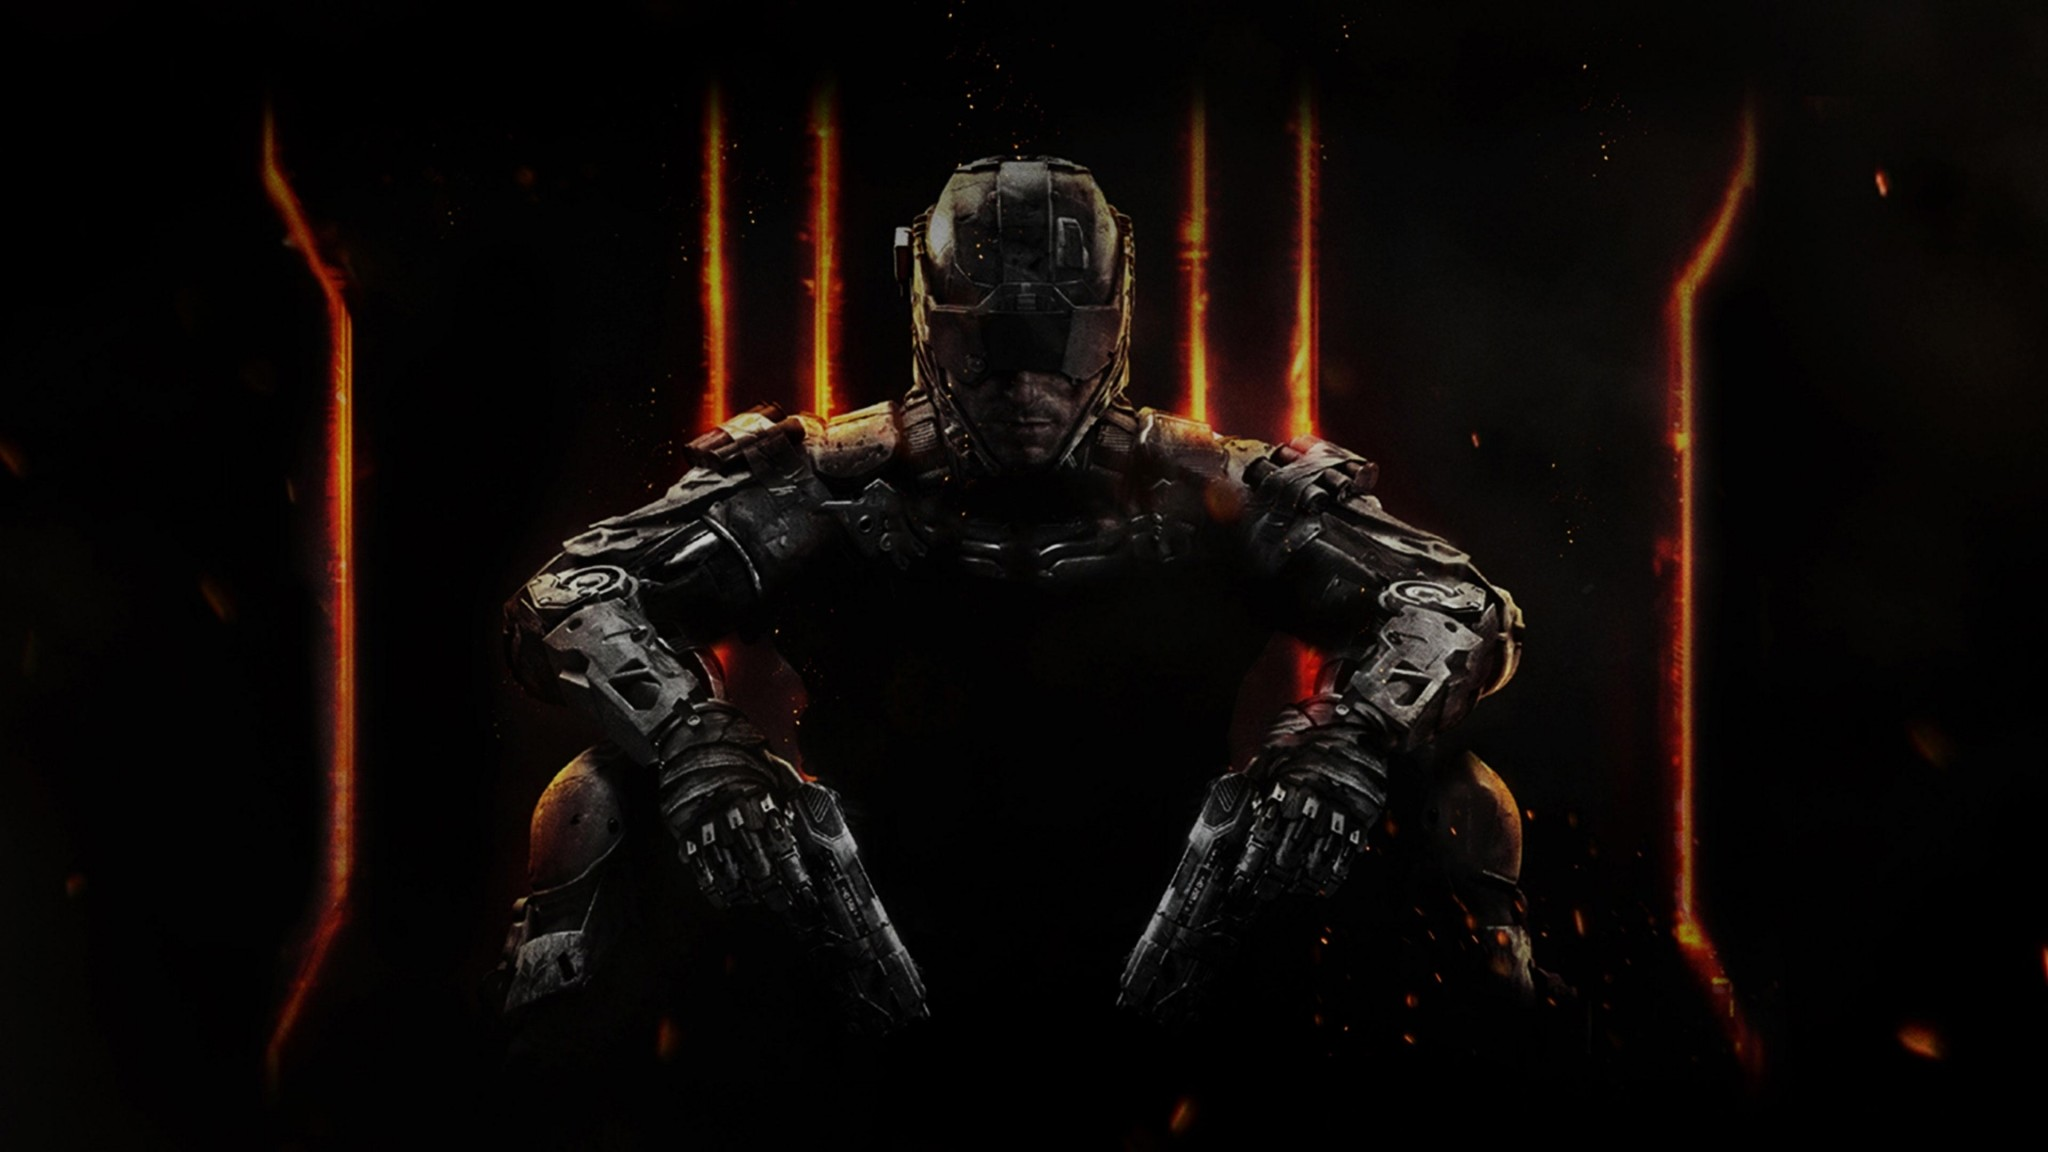 cod hd widescreen wallpapers · Black Ops 3The …